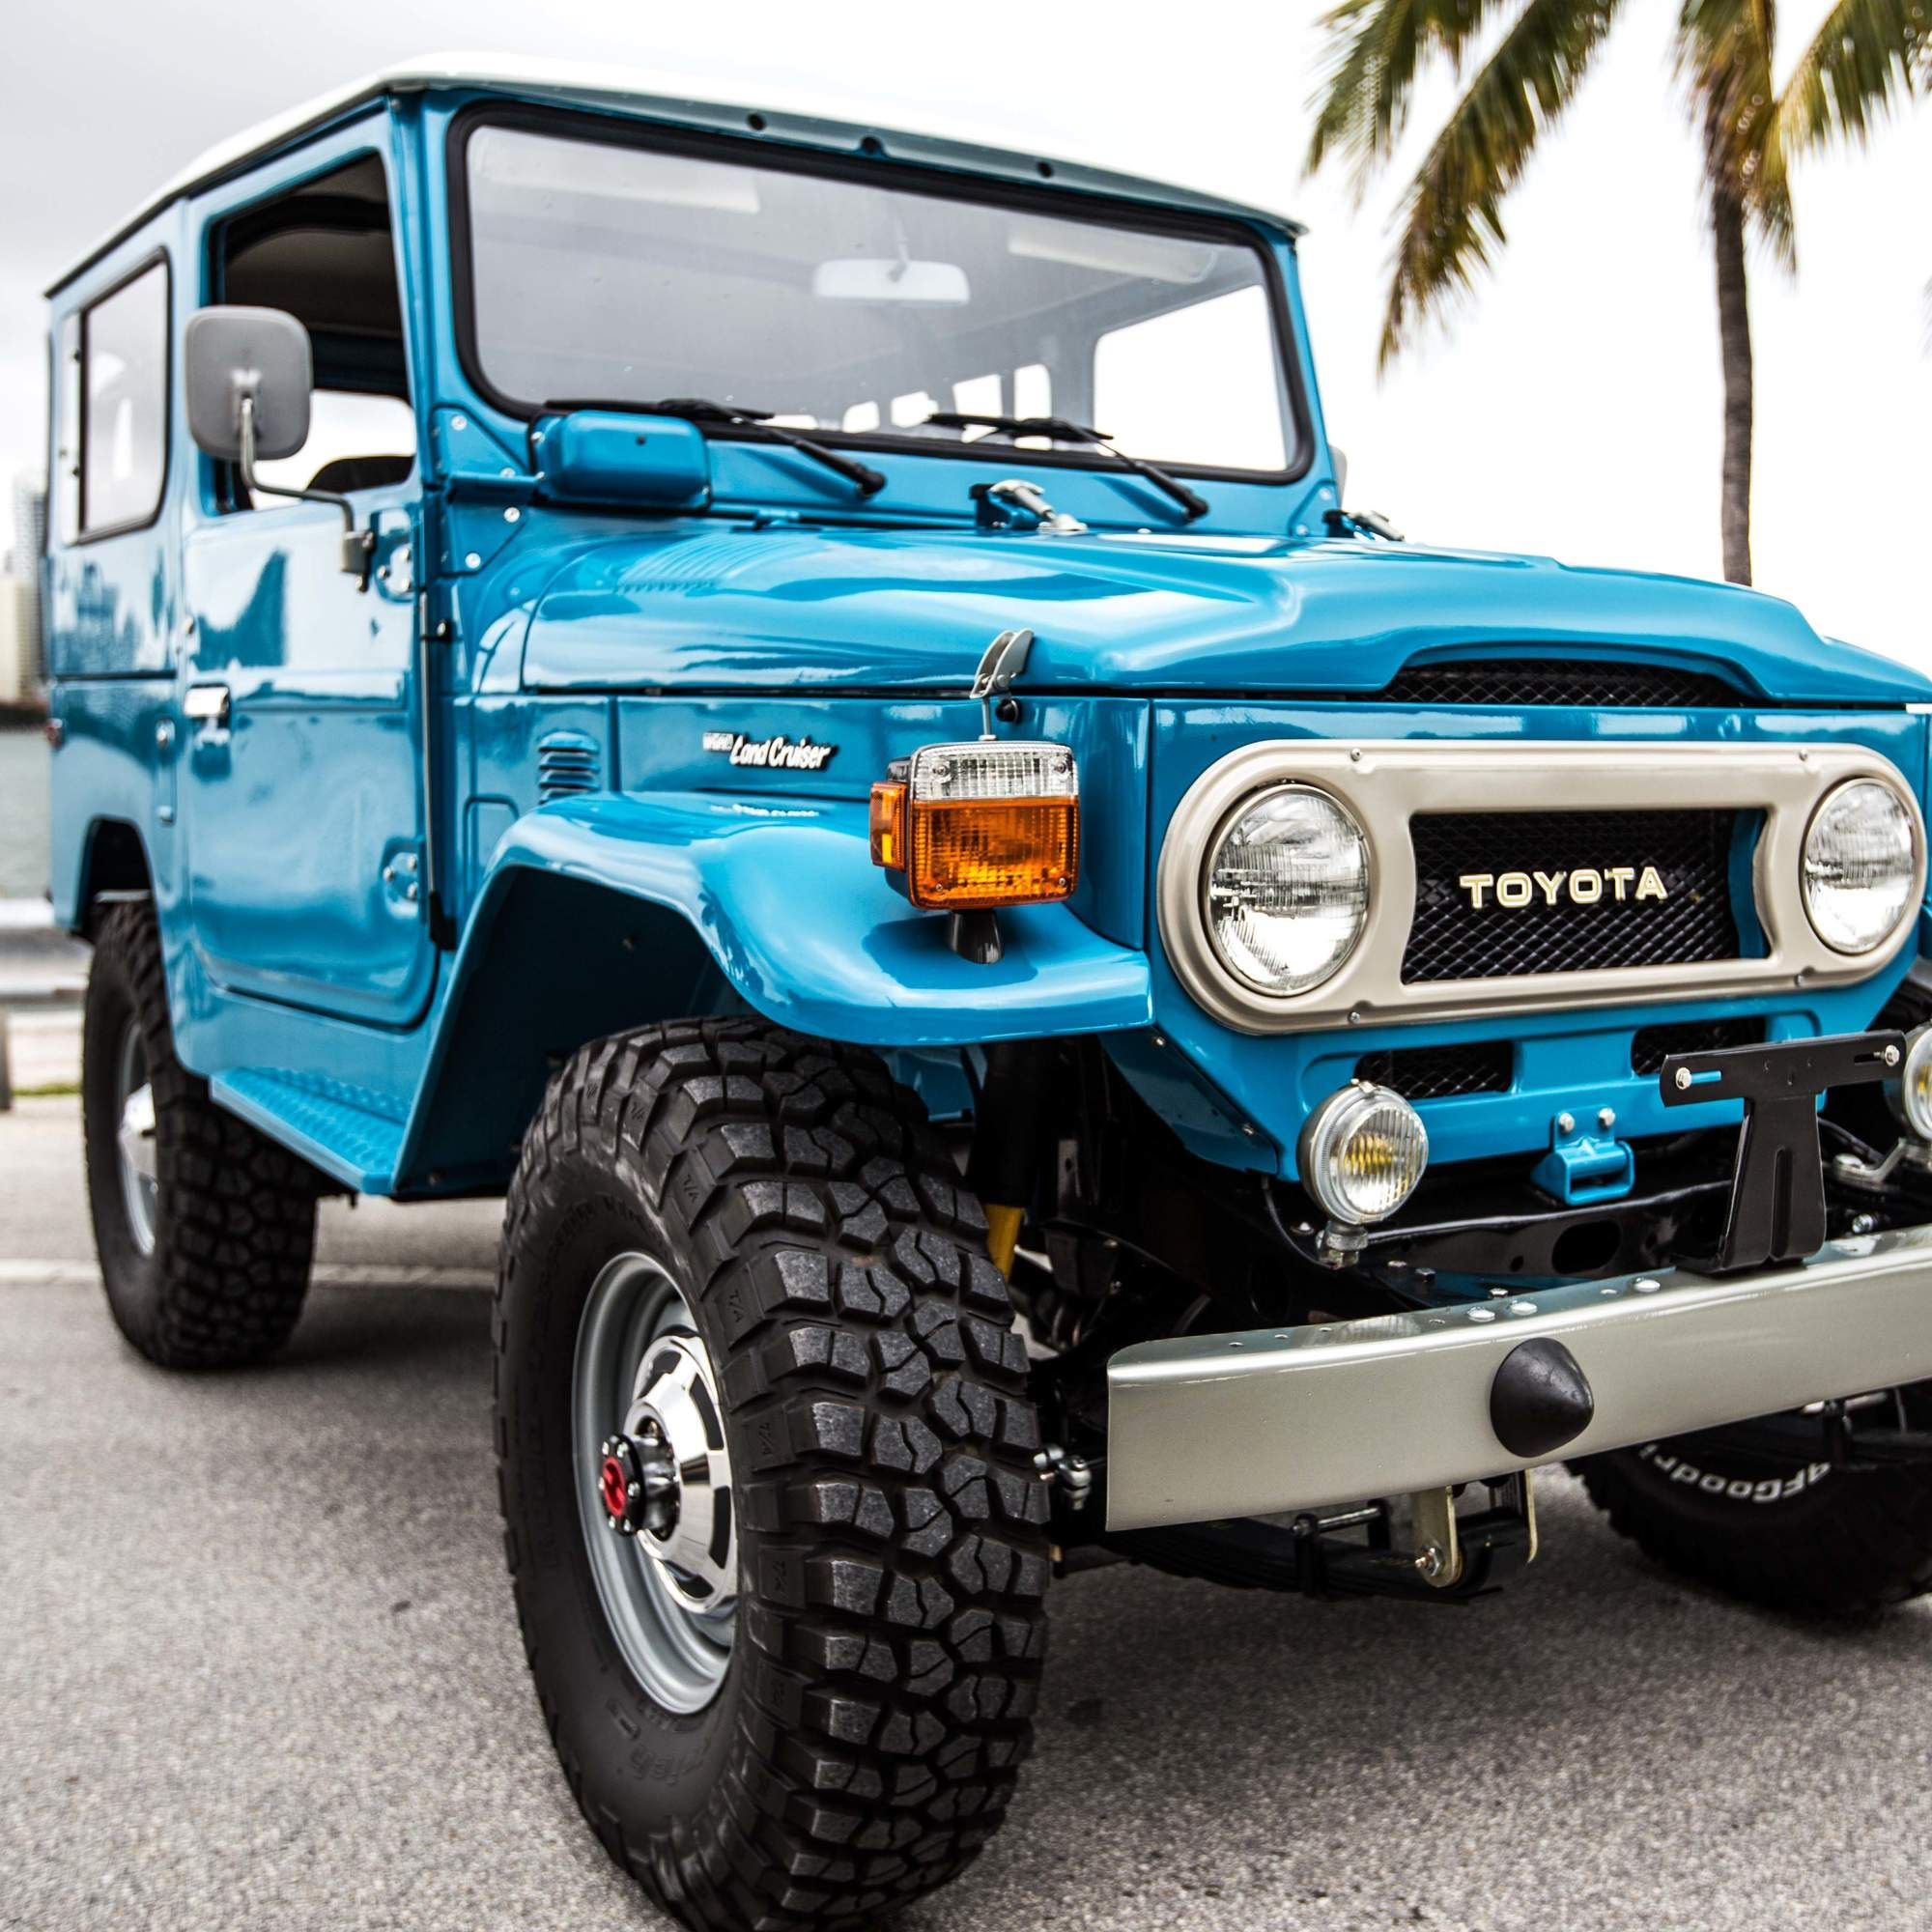 Perfectly Restored Vintage Land Cruisers That Won T Cost A Fortune